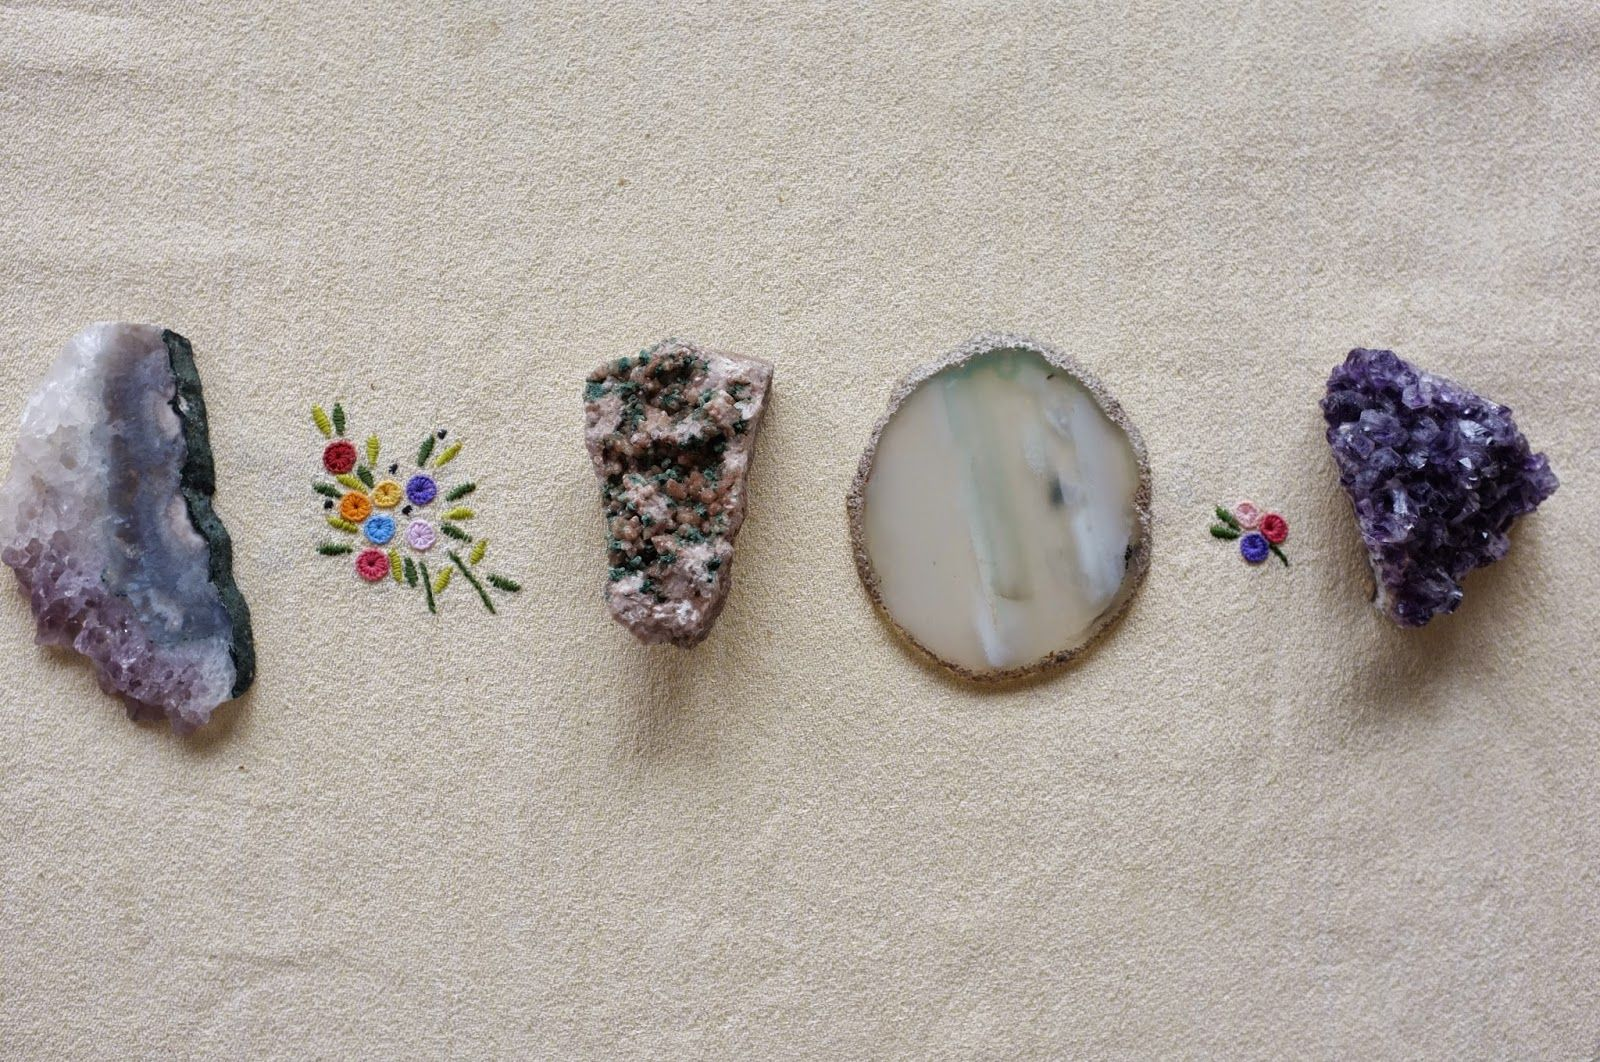 crystals | mieke willems